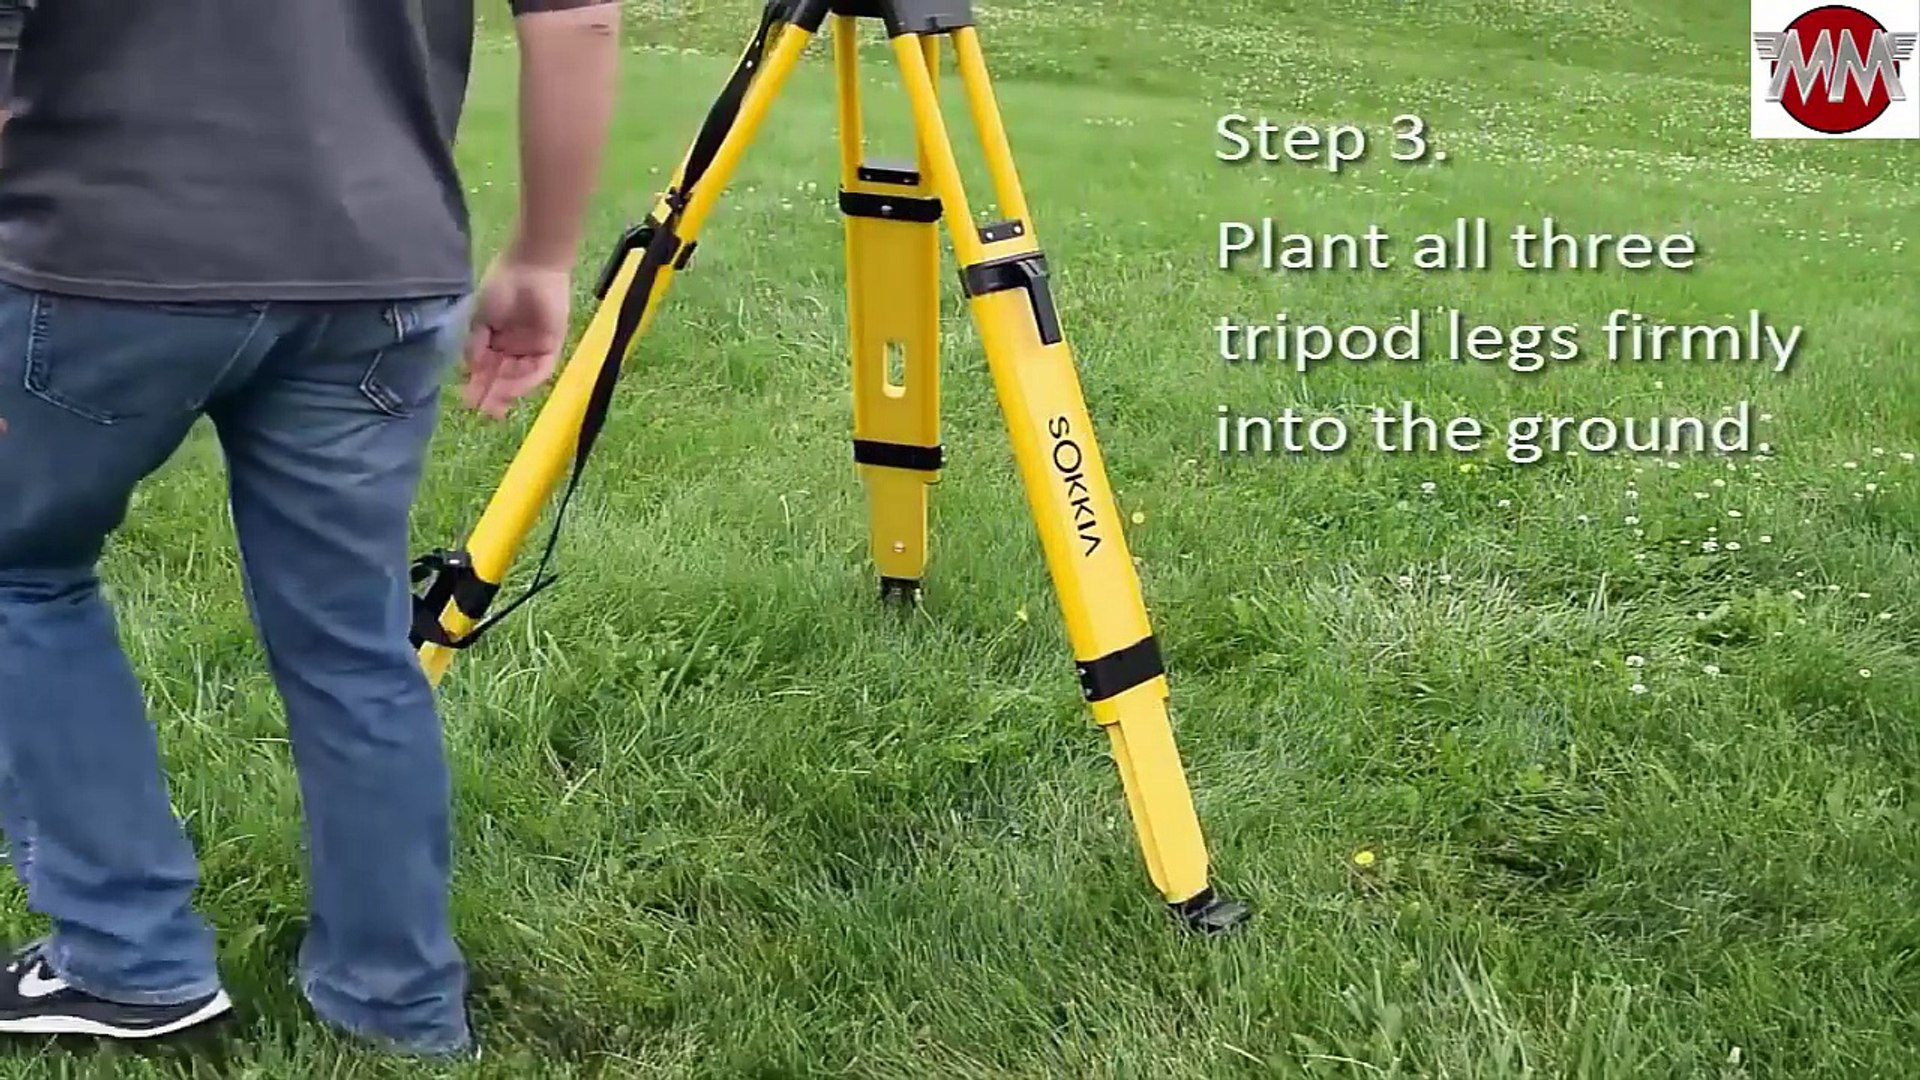 Latest Technology 2017 How To Use Automatic Level 10 Tips & Tripod Stand-vPbv5ub7Iu0